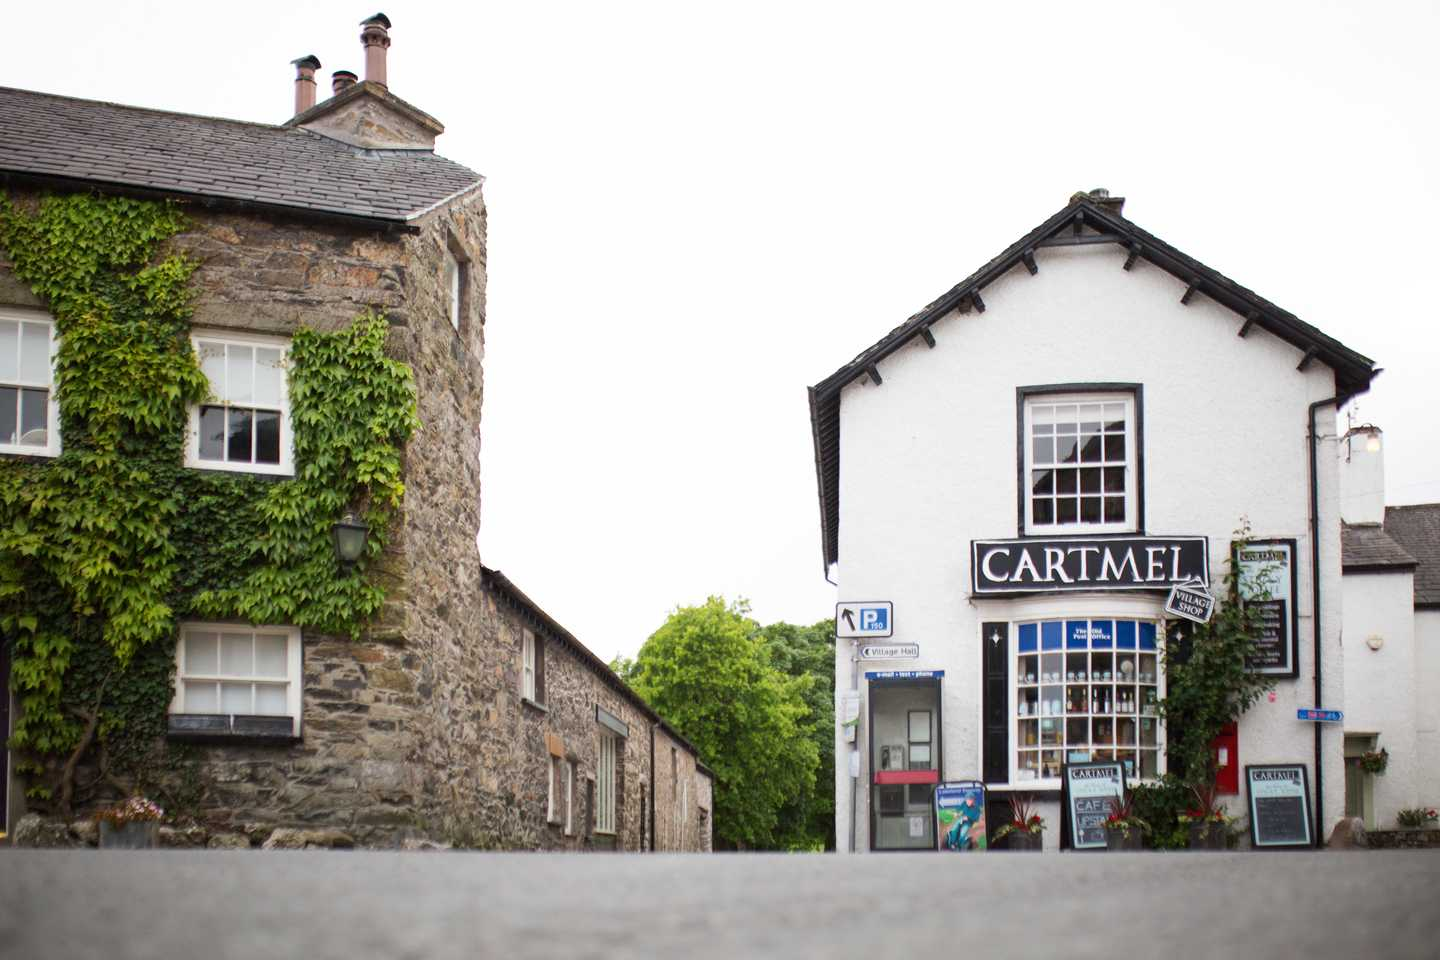 Cartmel Village square